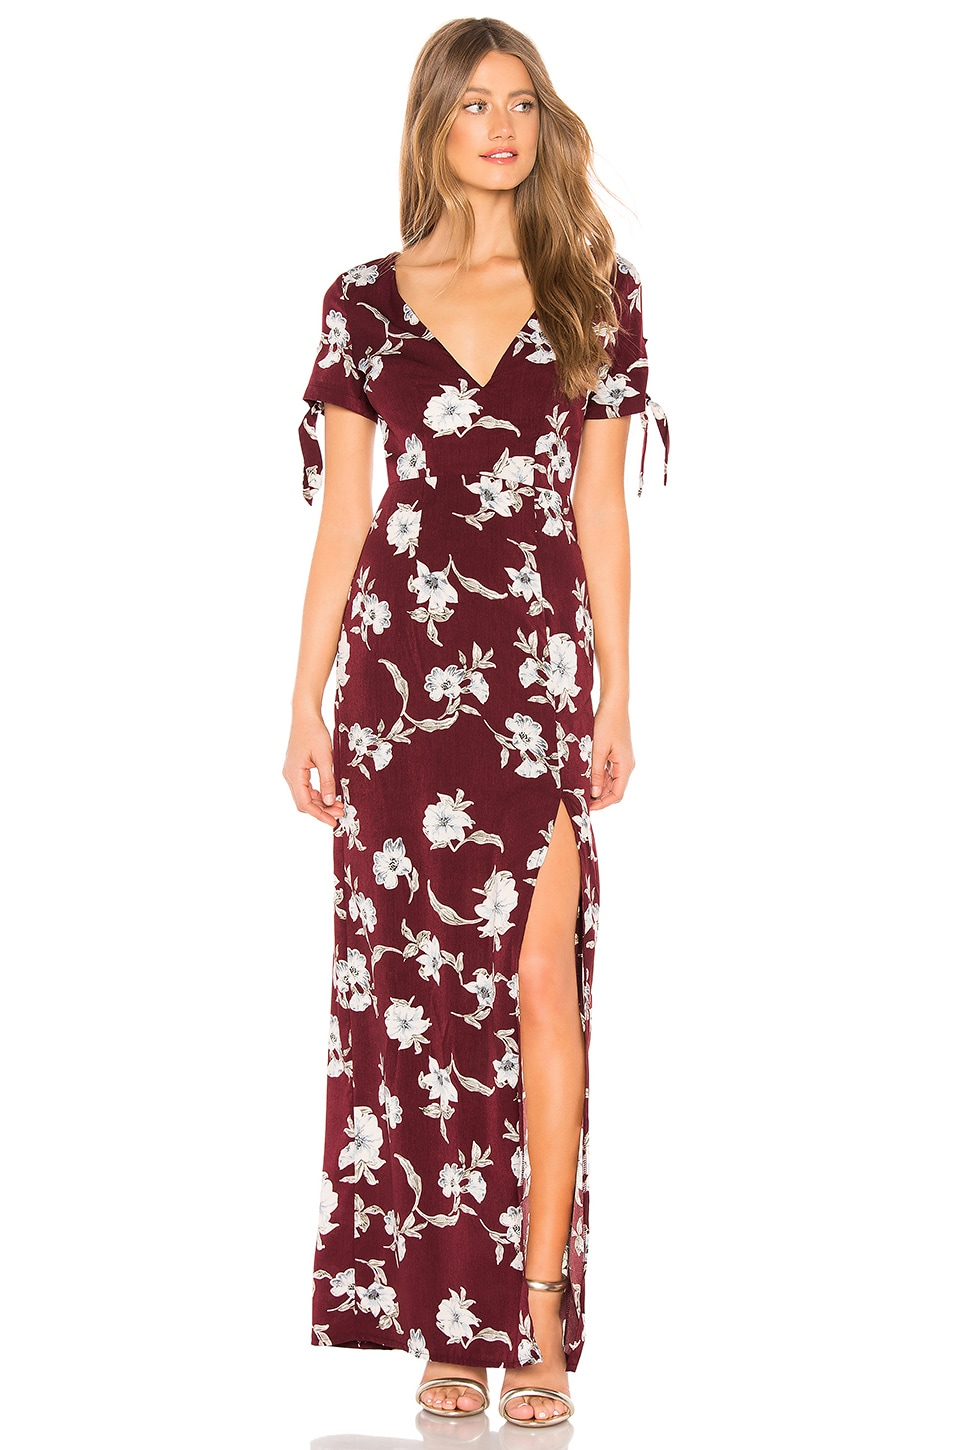 About Us Aubrey Maxi Dress in Wine Red Floral